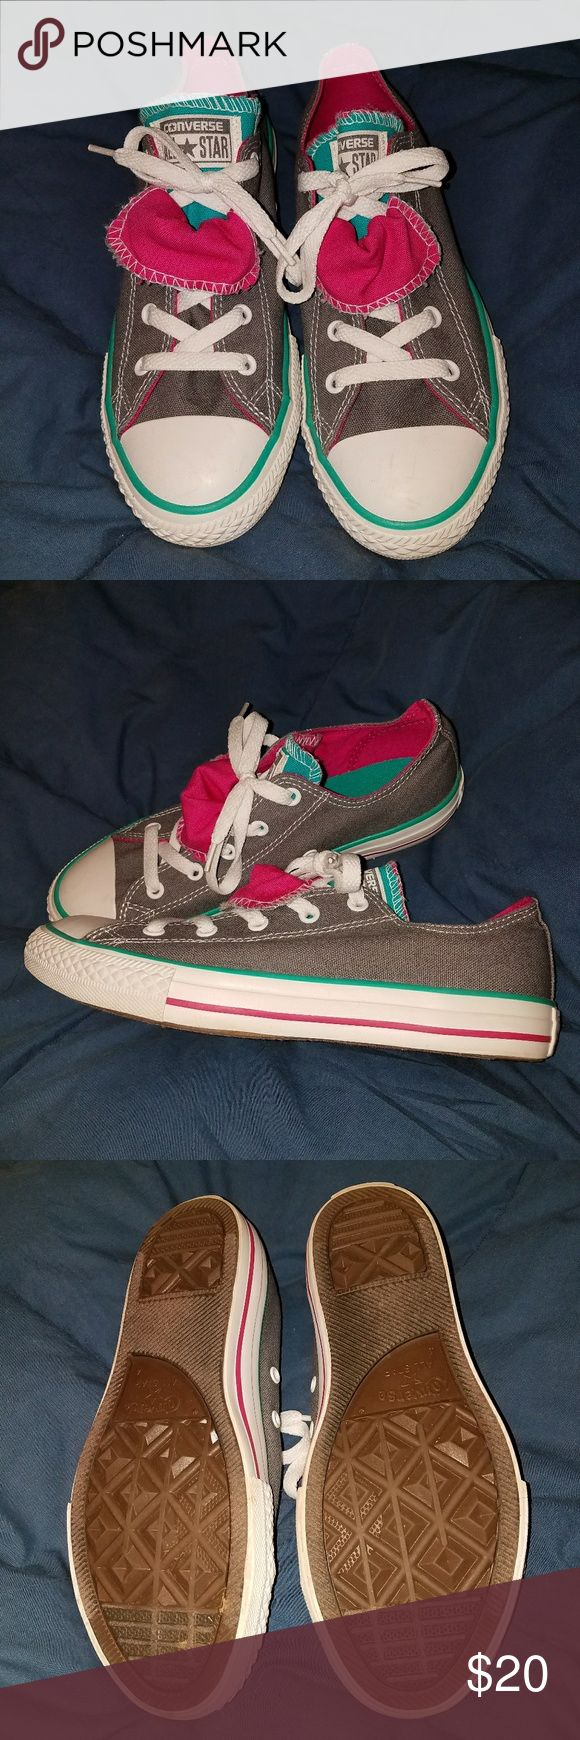 Authentic Converse double-tongue shoes Used but in great condition! Double-tongue lace up Converse shoes. Converse Shoes Sneakers